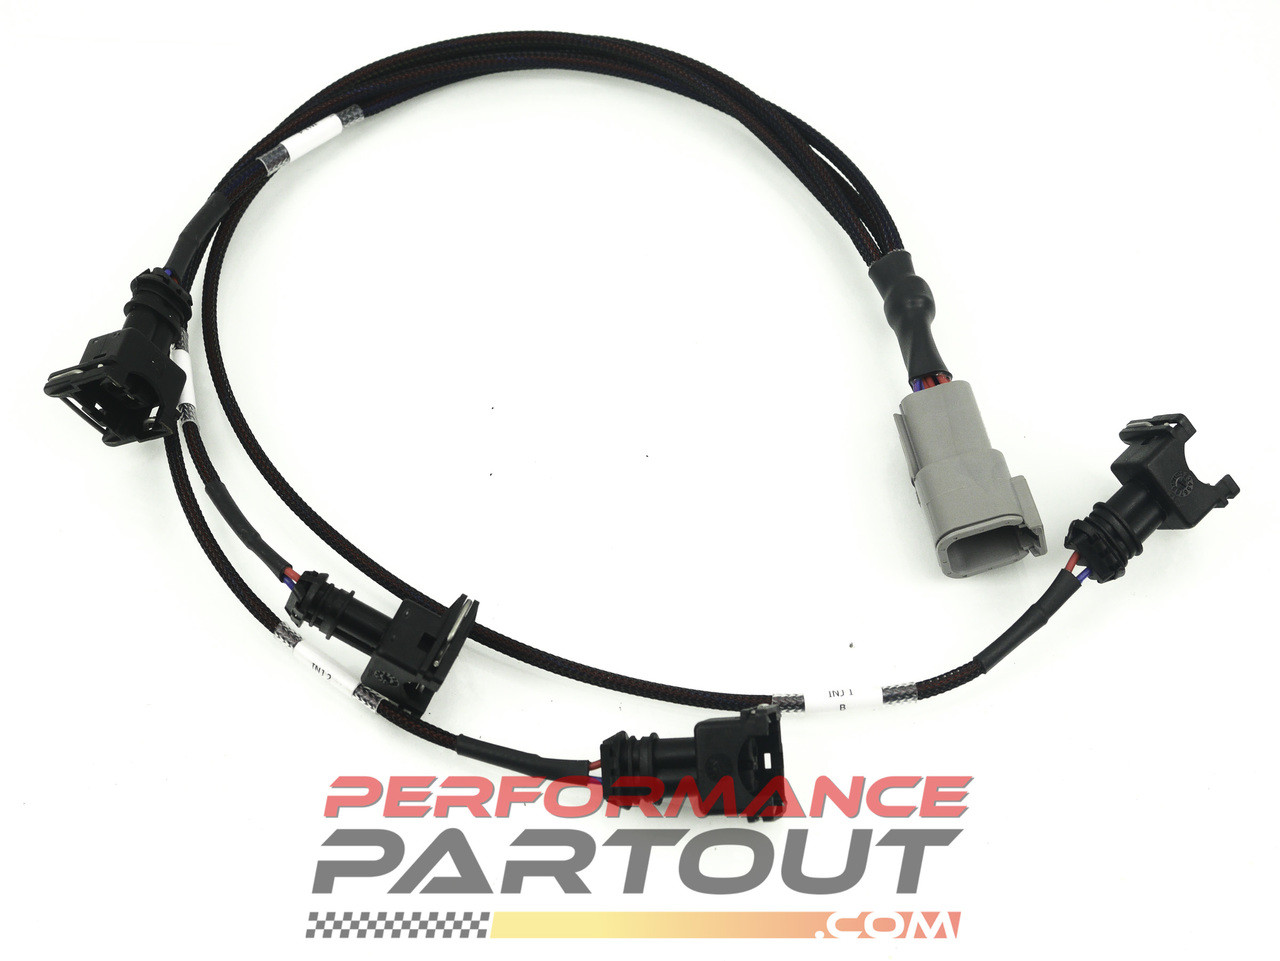 Injector Breakout harness DTM6 OEM plugs